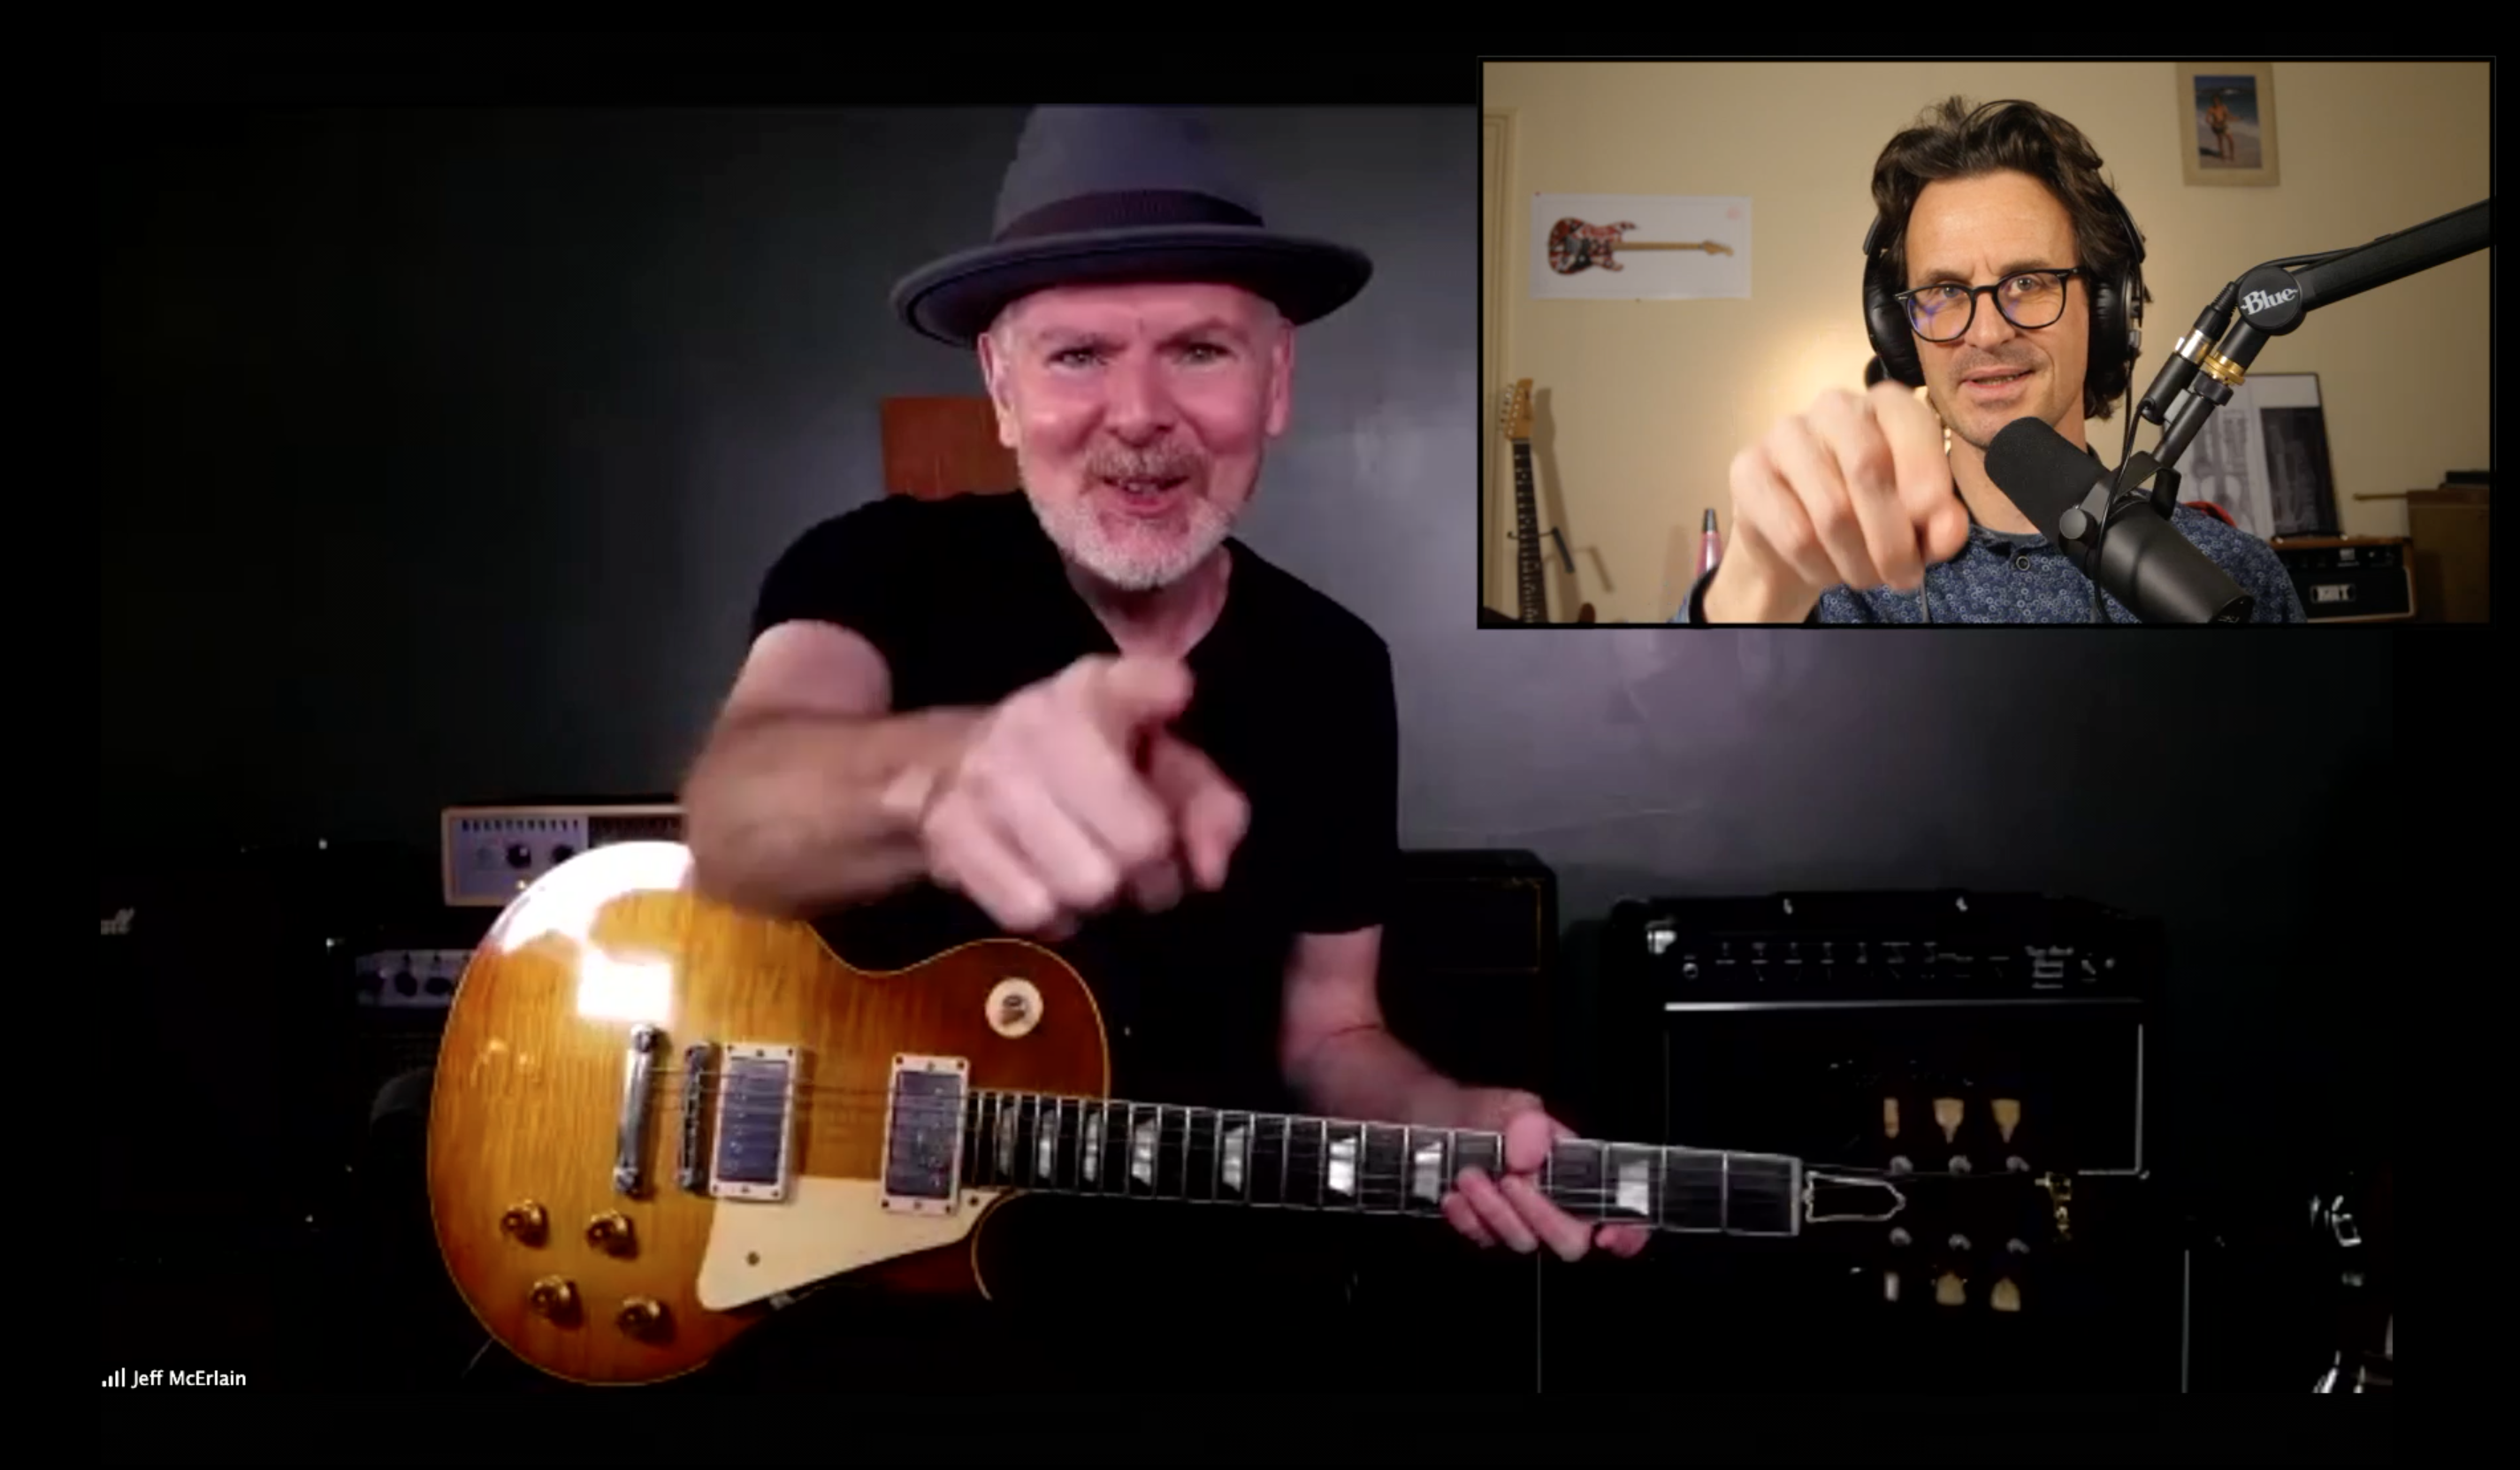 Jeff McErlain guitar in hand interview from Brooklyn with Robben Ford sideman